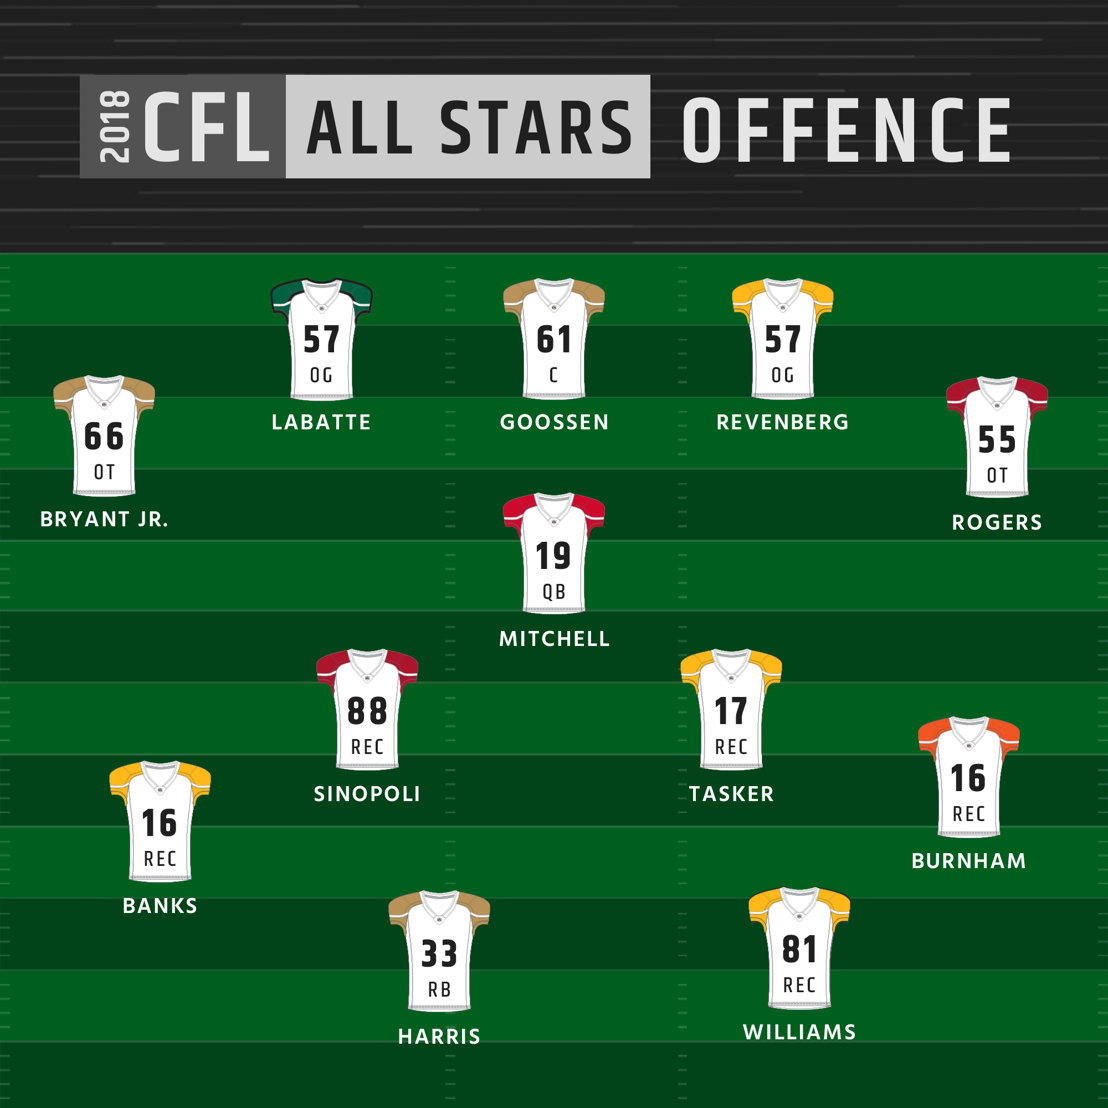 2018 CFL All-Stars - Offence